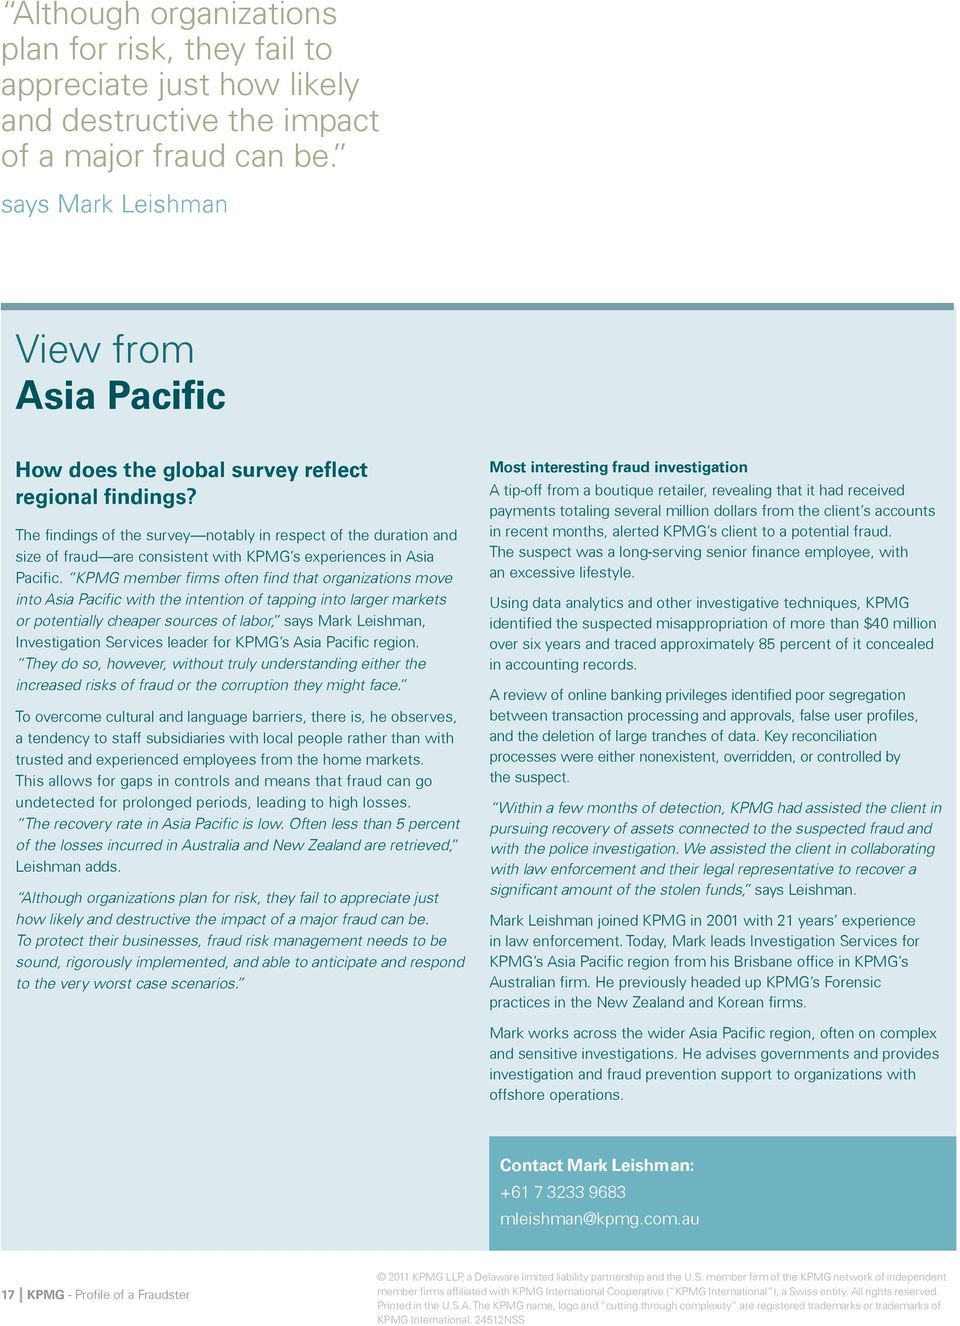 The findings of the survey notably in respect of the duration and size of fraud are consistent with KPMG s experiences in Asia Pacific.